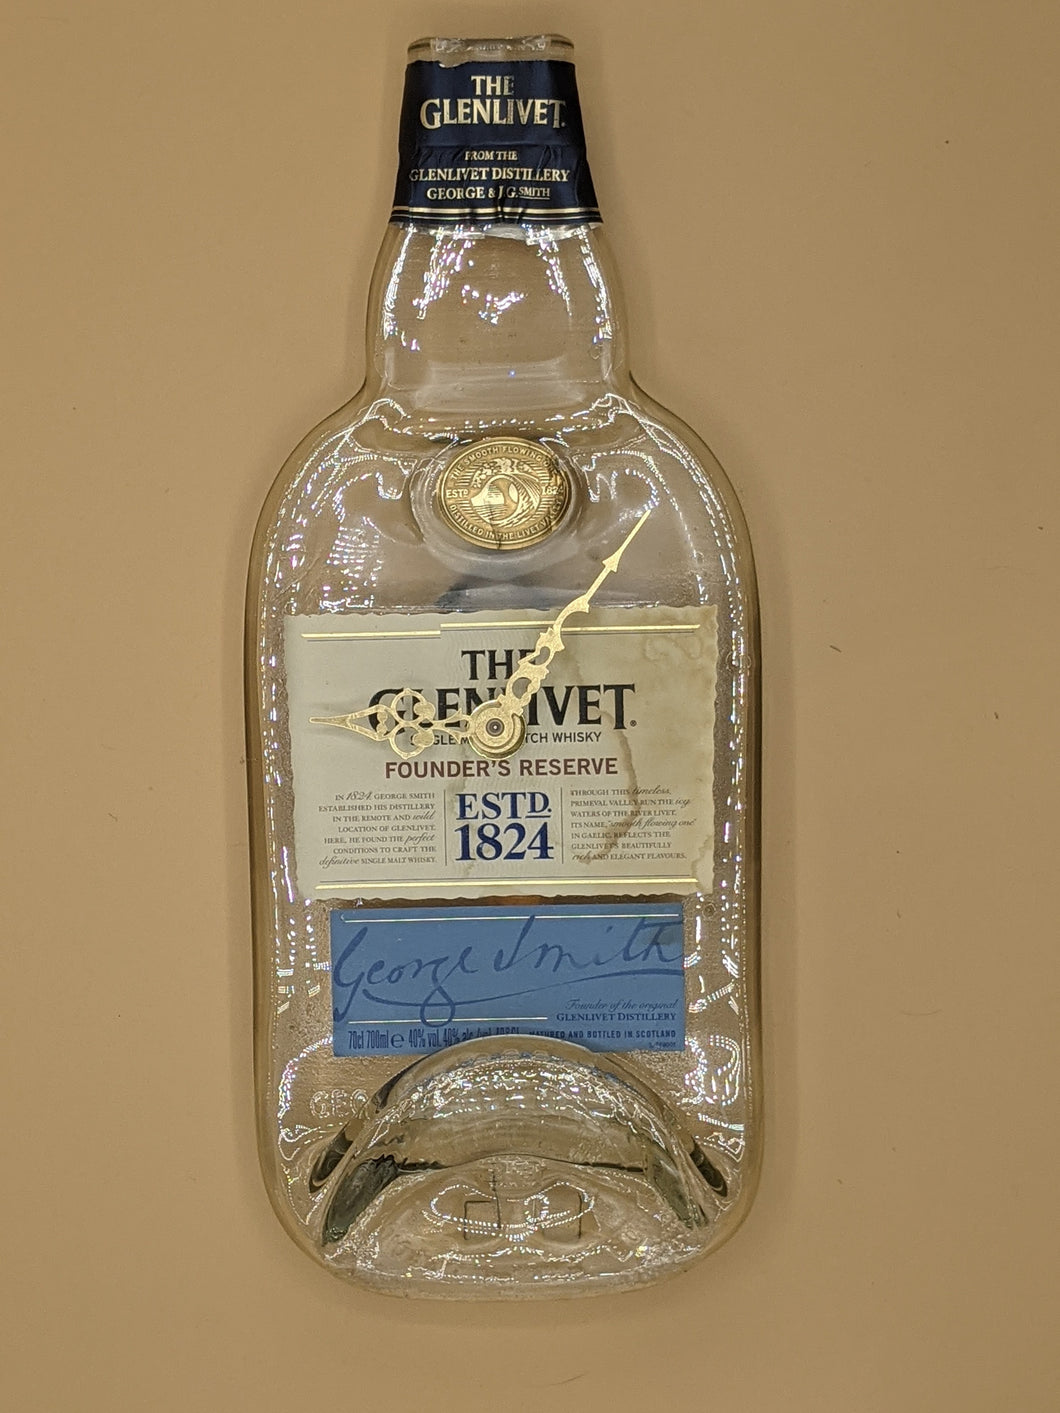 The Glenlivet whisky bottle clock